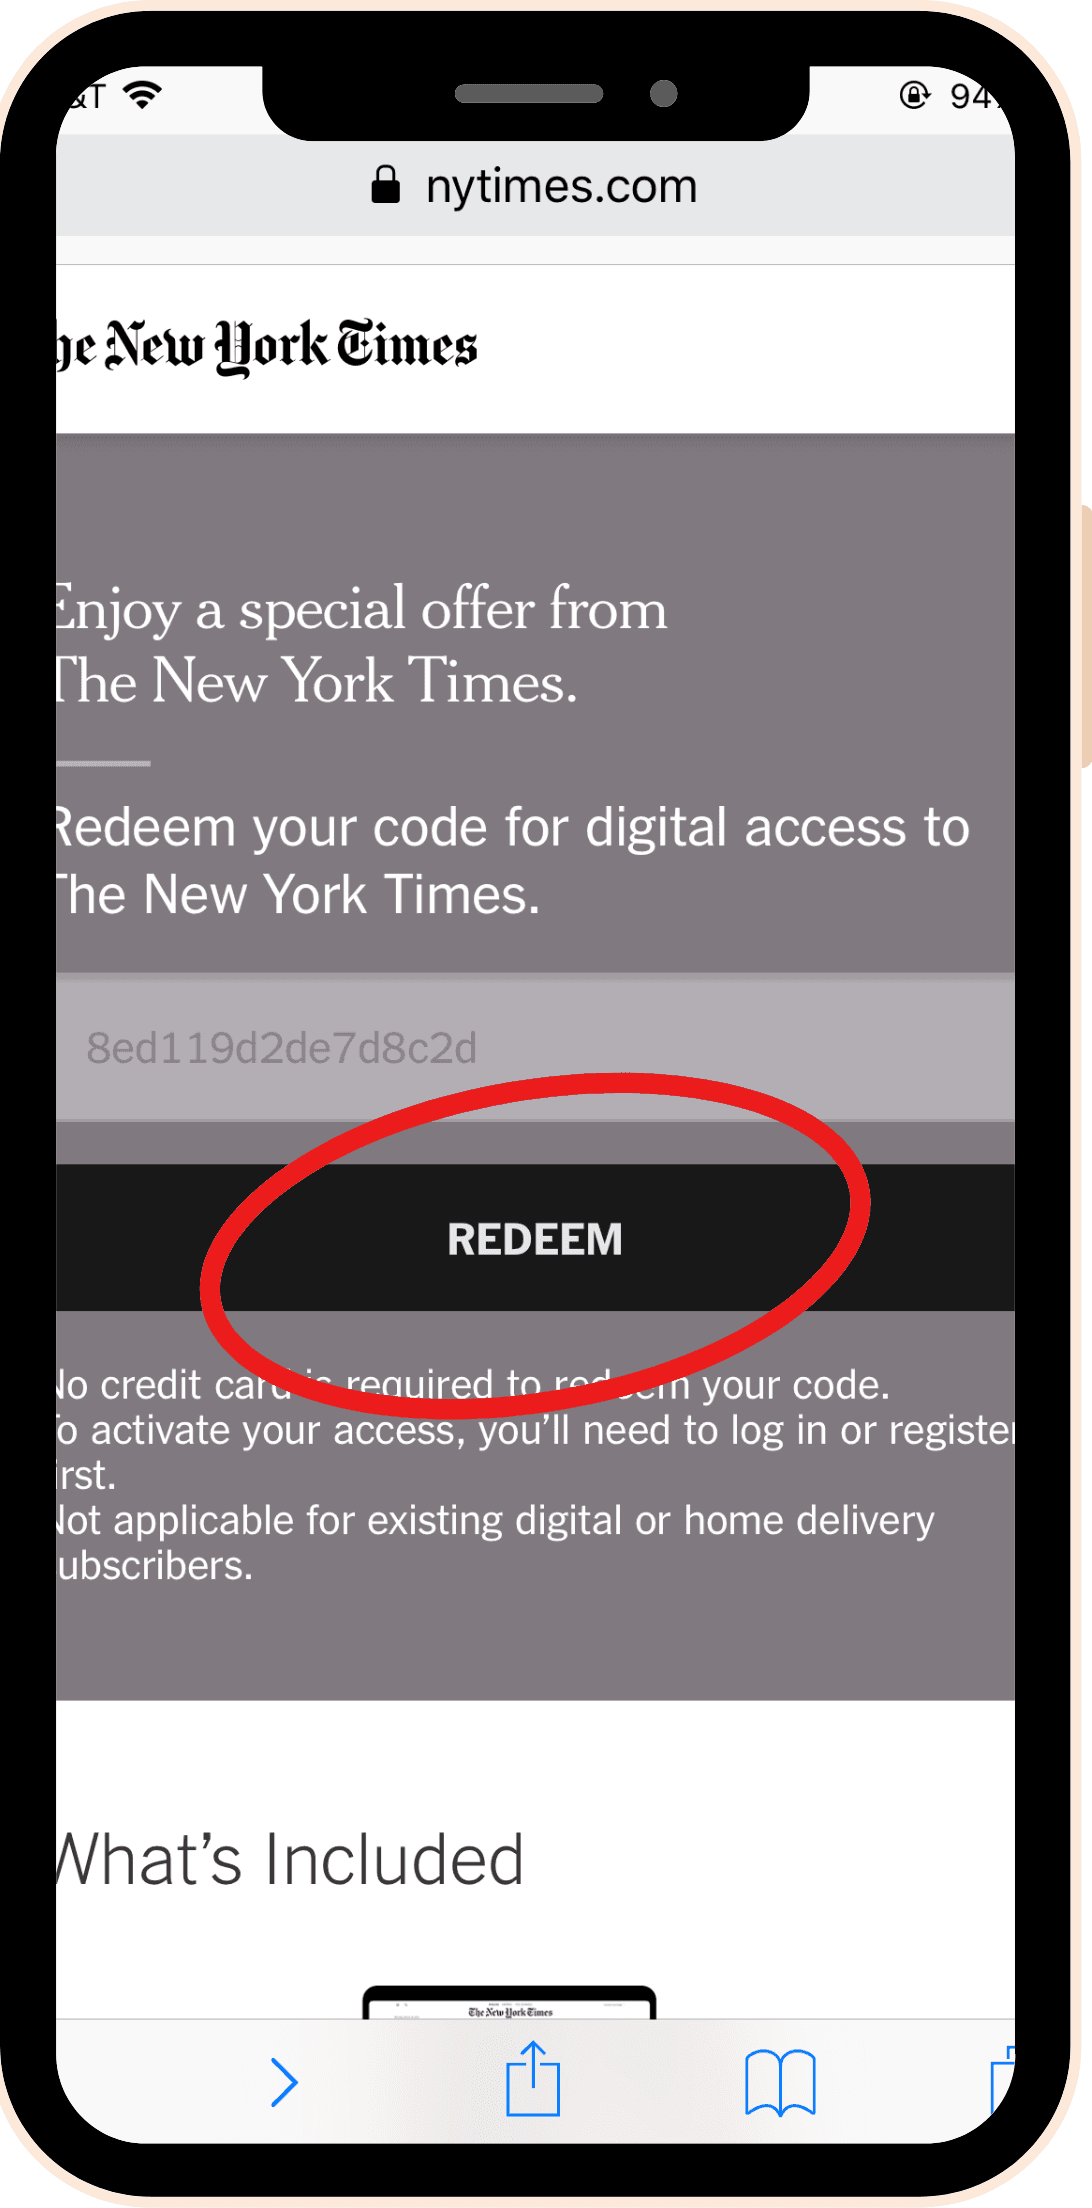 image of New York Times code redemption webpage